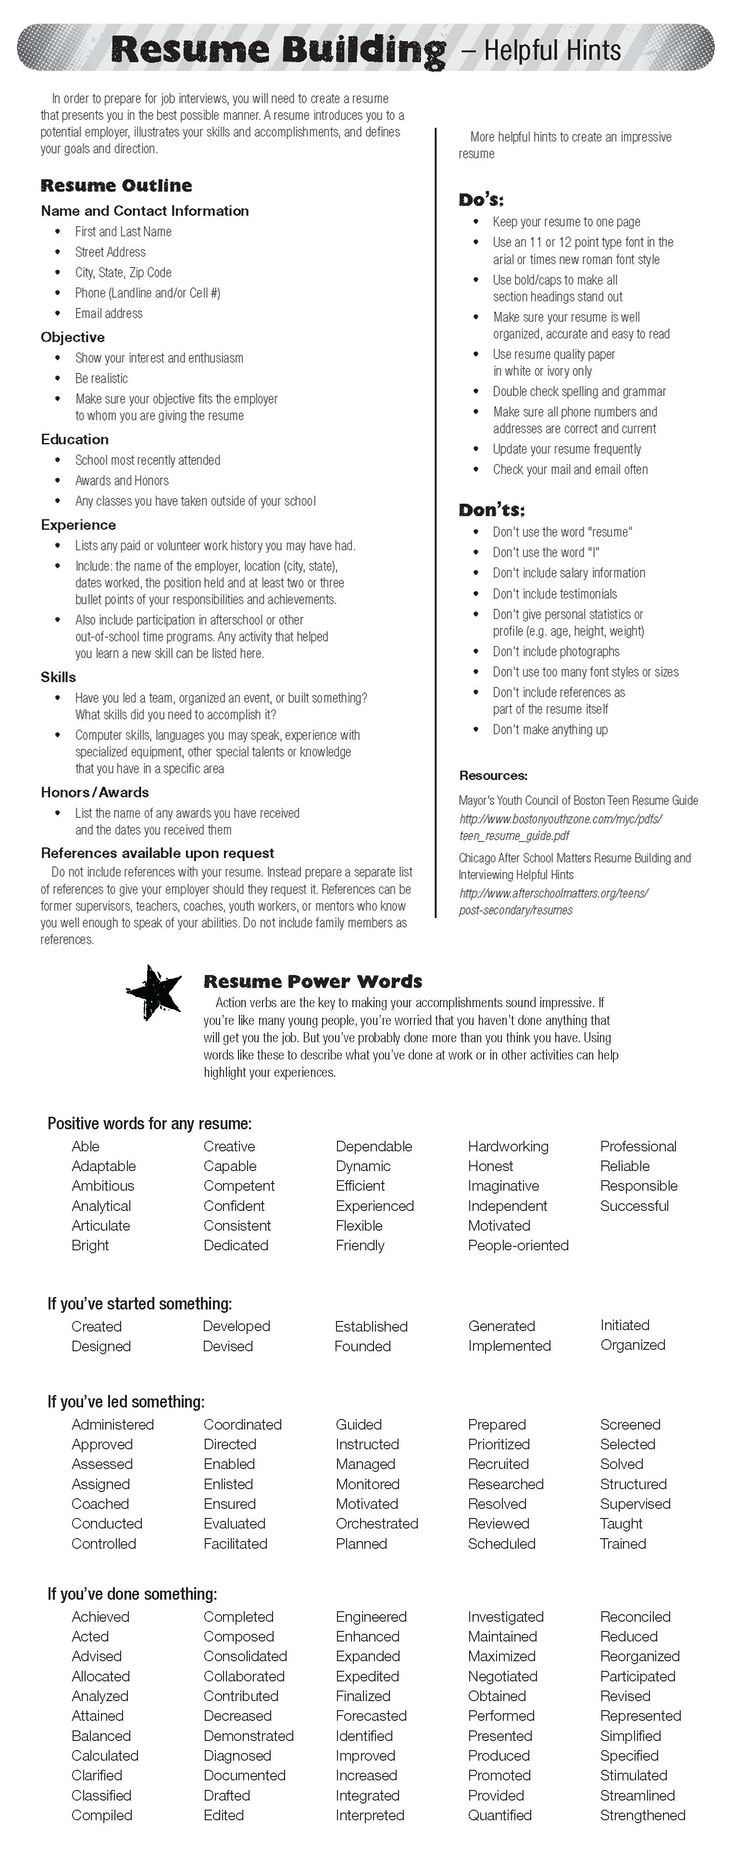 Opposenewapstandardsus  Fascinating  Ideas About Resume On Pinterest  Cv Format Resume Cv And  With Great  Ideas About Resume On Pinterest  Cv Format Resume Cv And Resume Templates With Lovely Berkeley Resume Also Career Builder Resume Template In Addition Resume Writing Format And Contemporary Resumes As Well As Clothing Store Resume Additionally Staffing Recruiter Resume From Pinterestcom With Opposenewapstandardsus  Great  Ideas About Resume On Pinterest  Cv Format Resume Cv And  With Lovely  Ideas About Resume On Pinterest  Cv Format Resume Cv And Resume Templates And Fascinating Berkeley Resume Also Career Builder Resume Template In Addition Resume Writing Format From Pinterestcom